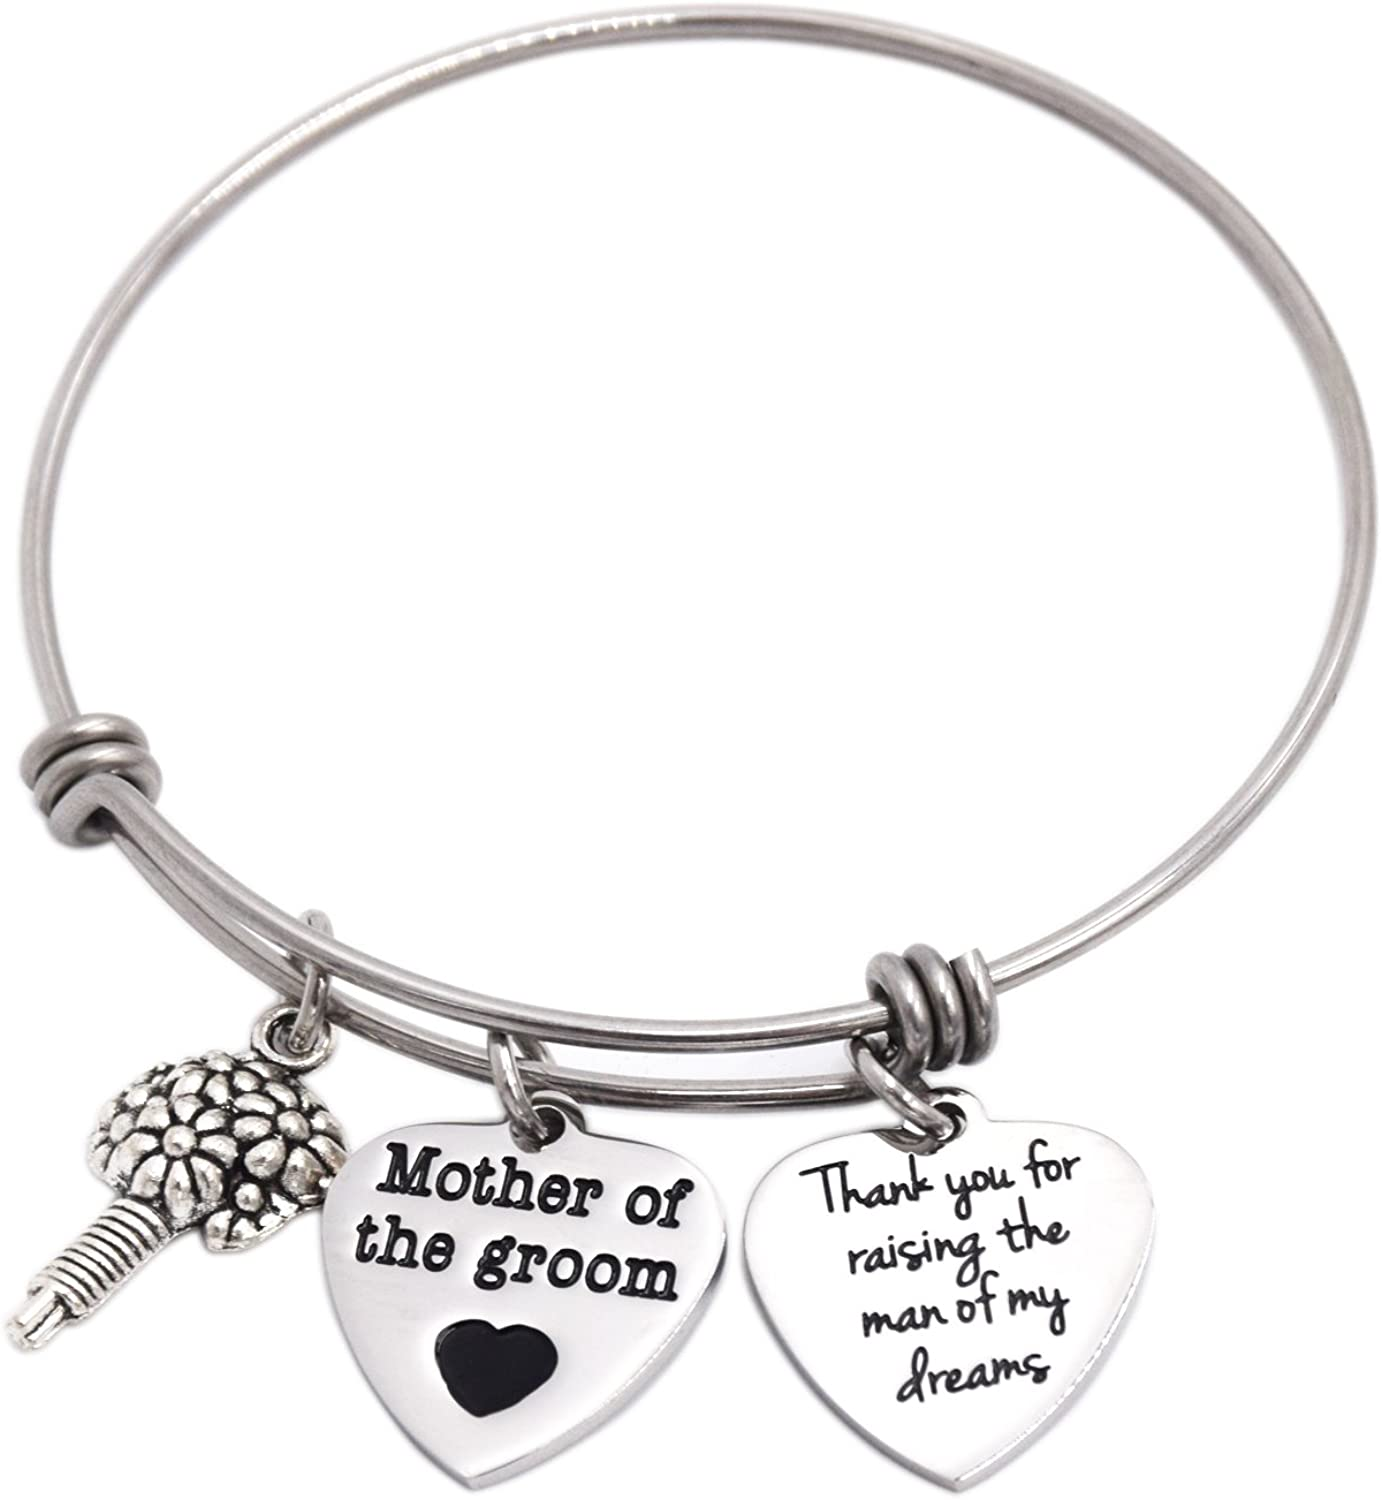 LParkin Mother of The Groom Adjustable Bangle Thank You for Raising The Man of My Dreams Bracelet